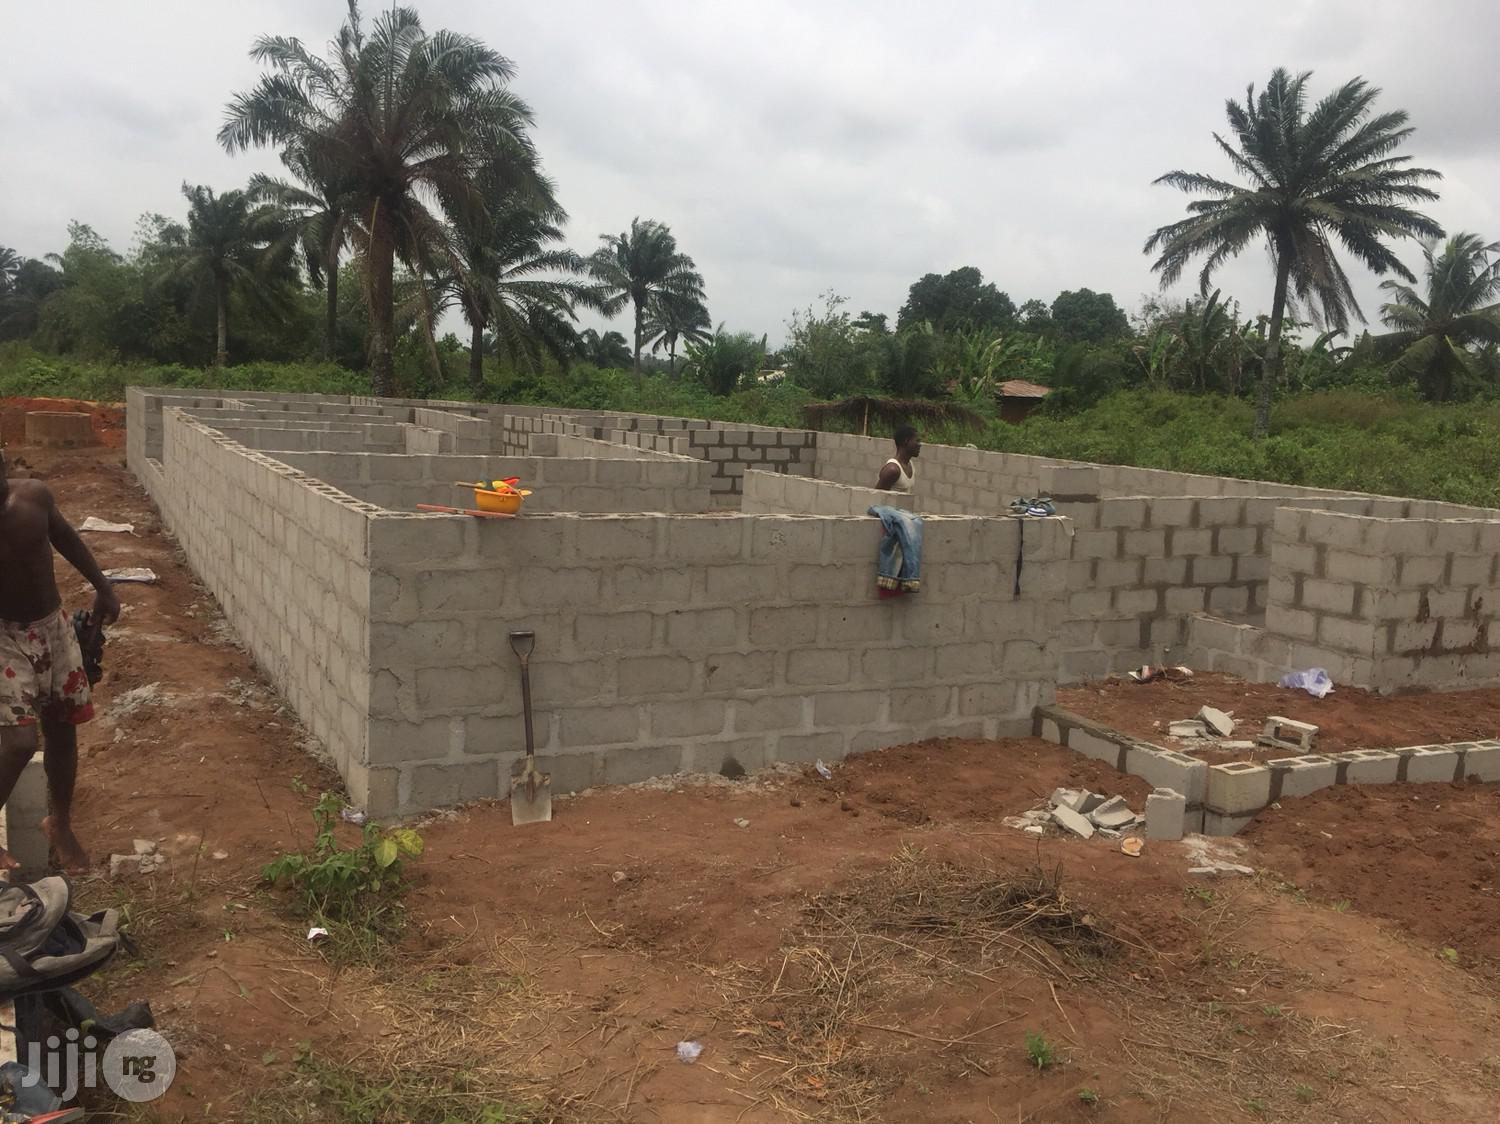 Hot Plots Of Land For Urgent Sale In Mowo (Badagry Lagos)   Land & Plots For Sale for sale in Badagry, Lagos State, Nigeria